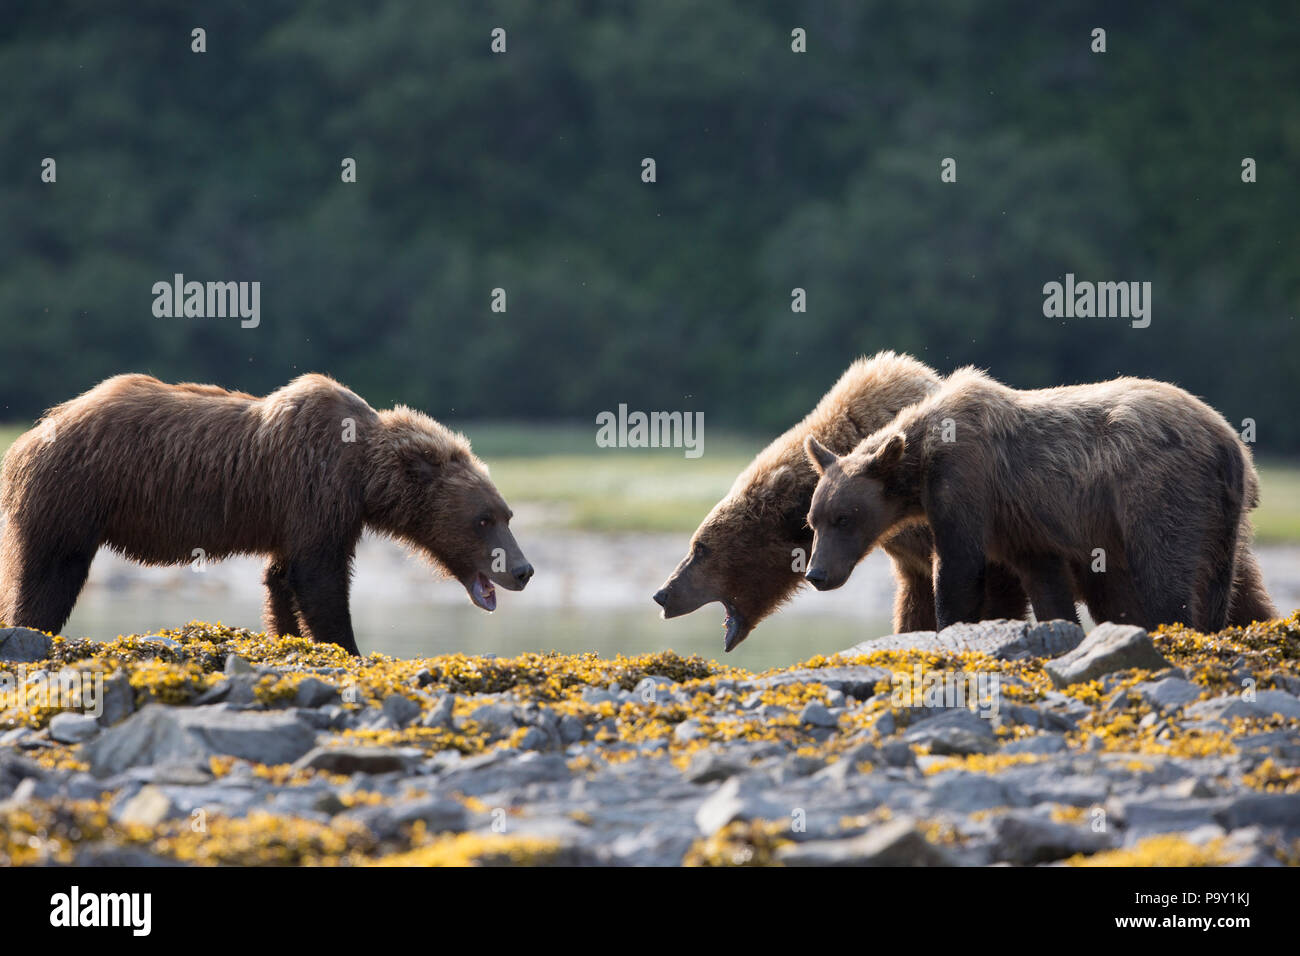 The bears having a stand off, shoreline of Katmai National Park - Stock Image